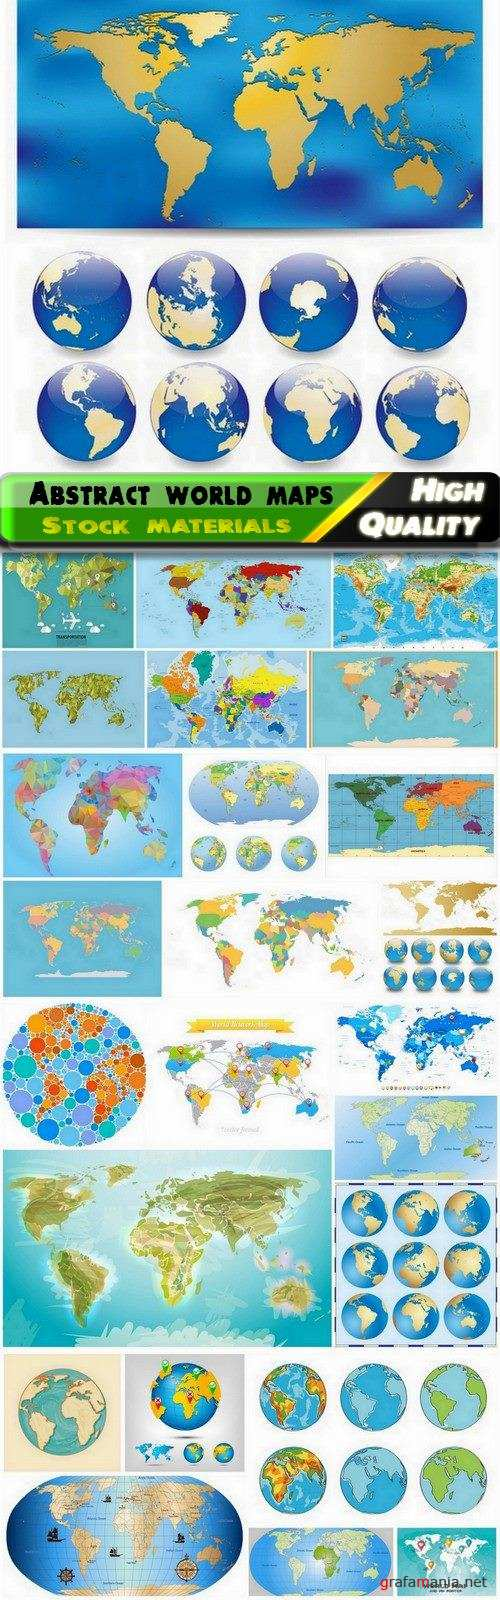 Abstract world globe and world maps - 25 Eps